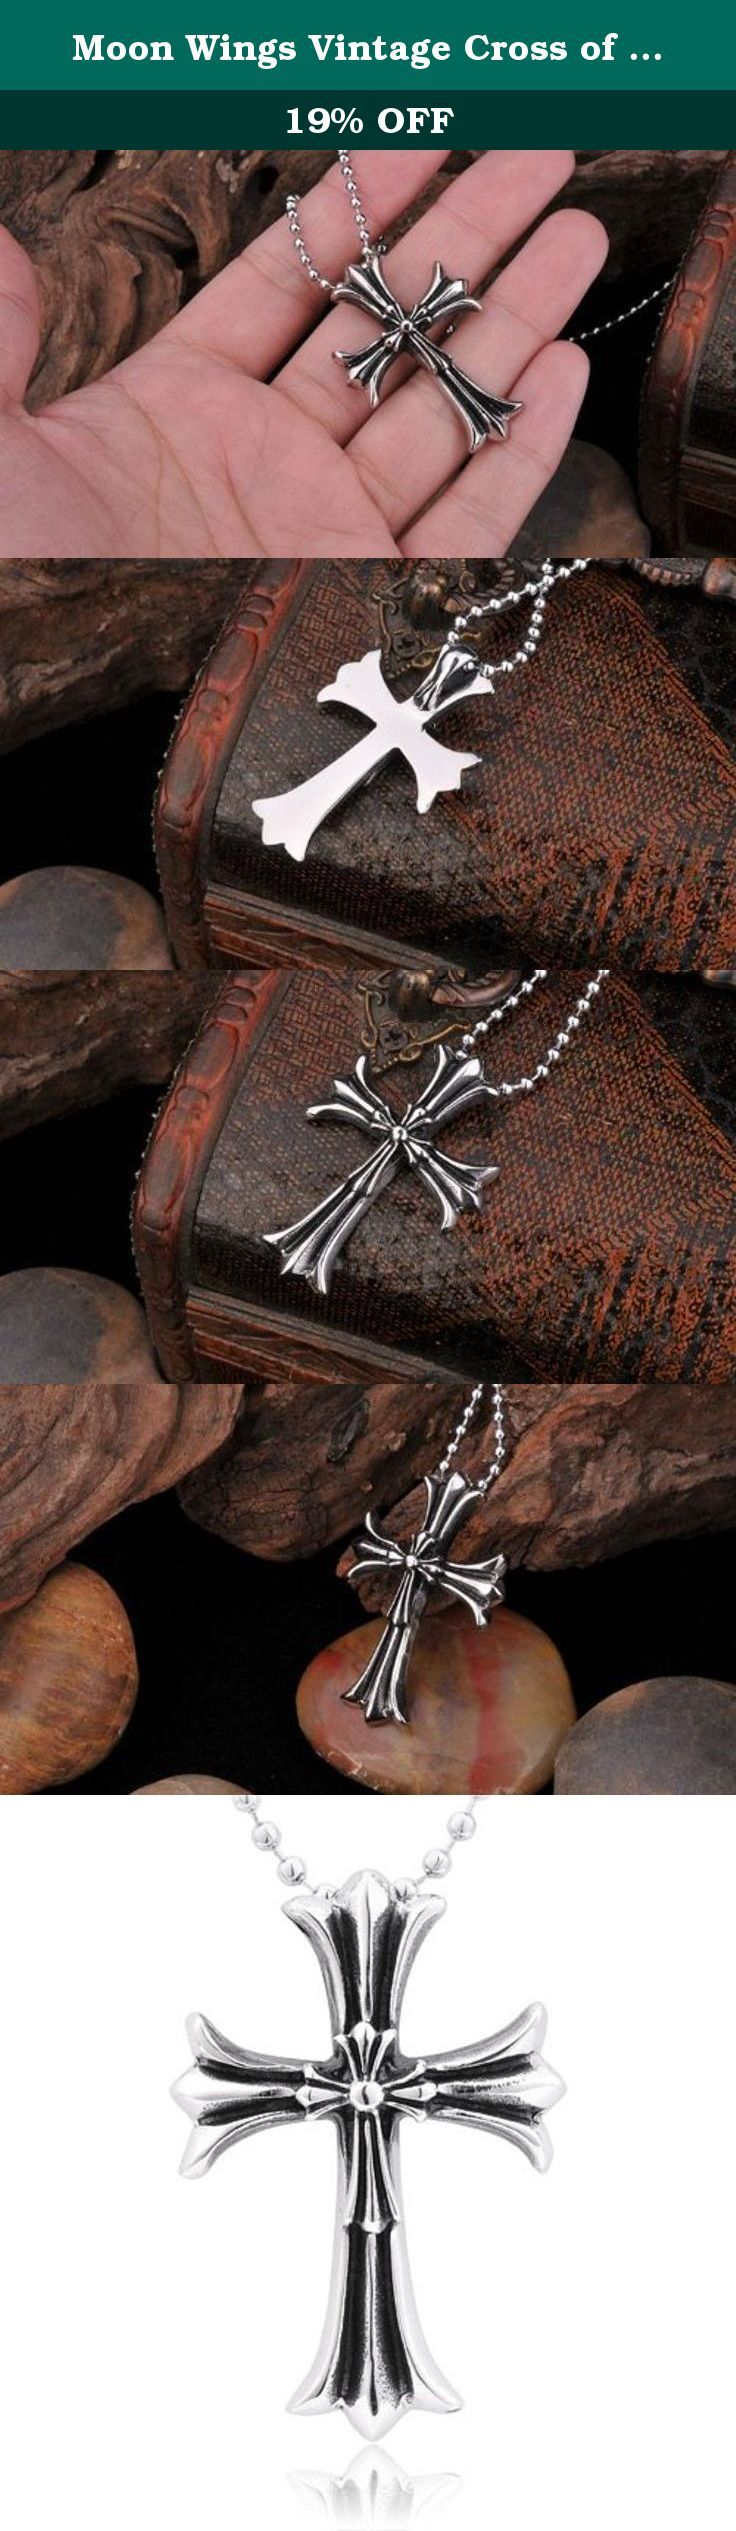 Moon Wings Vintage Cross of Christ Jesus Stainless Steel Pendant with Necklace. This is a solid Pendant; Pendant Size: 45MM X 31MM; Necklace Length 60CM or 23.6 inches: Free Luxury jewelry box will be provided.